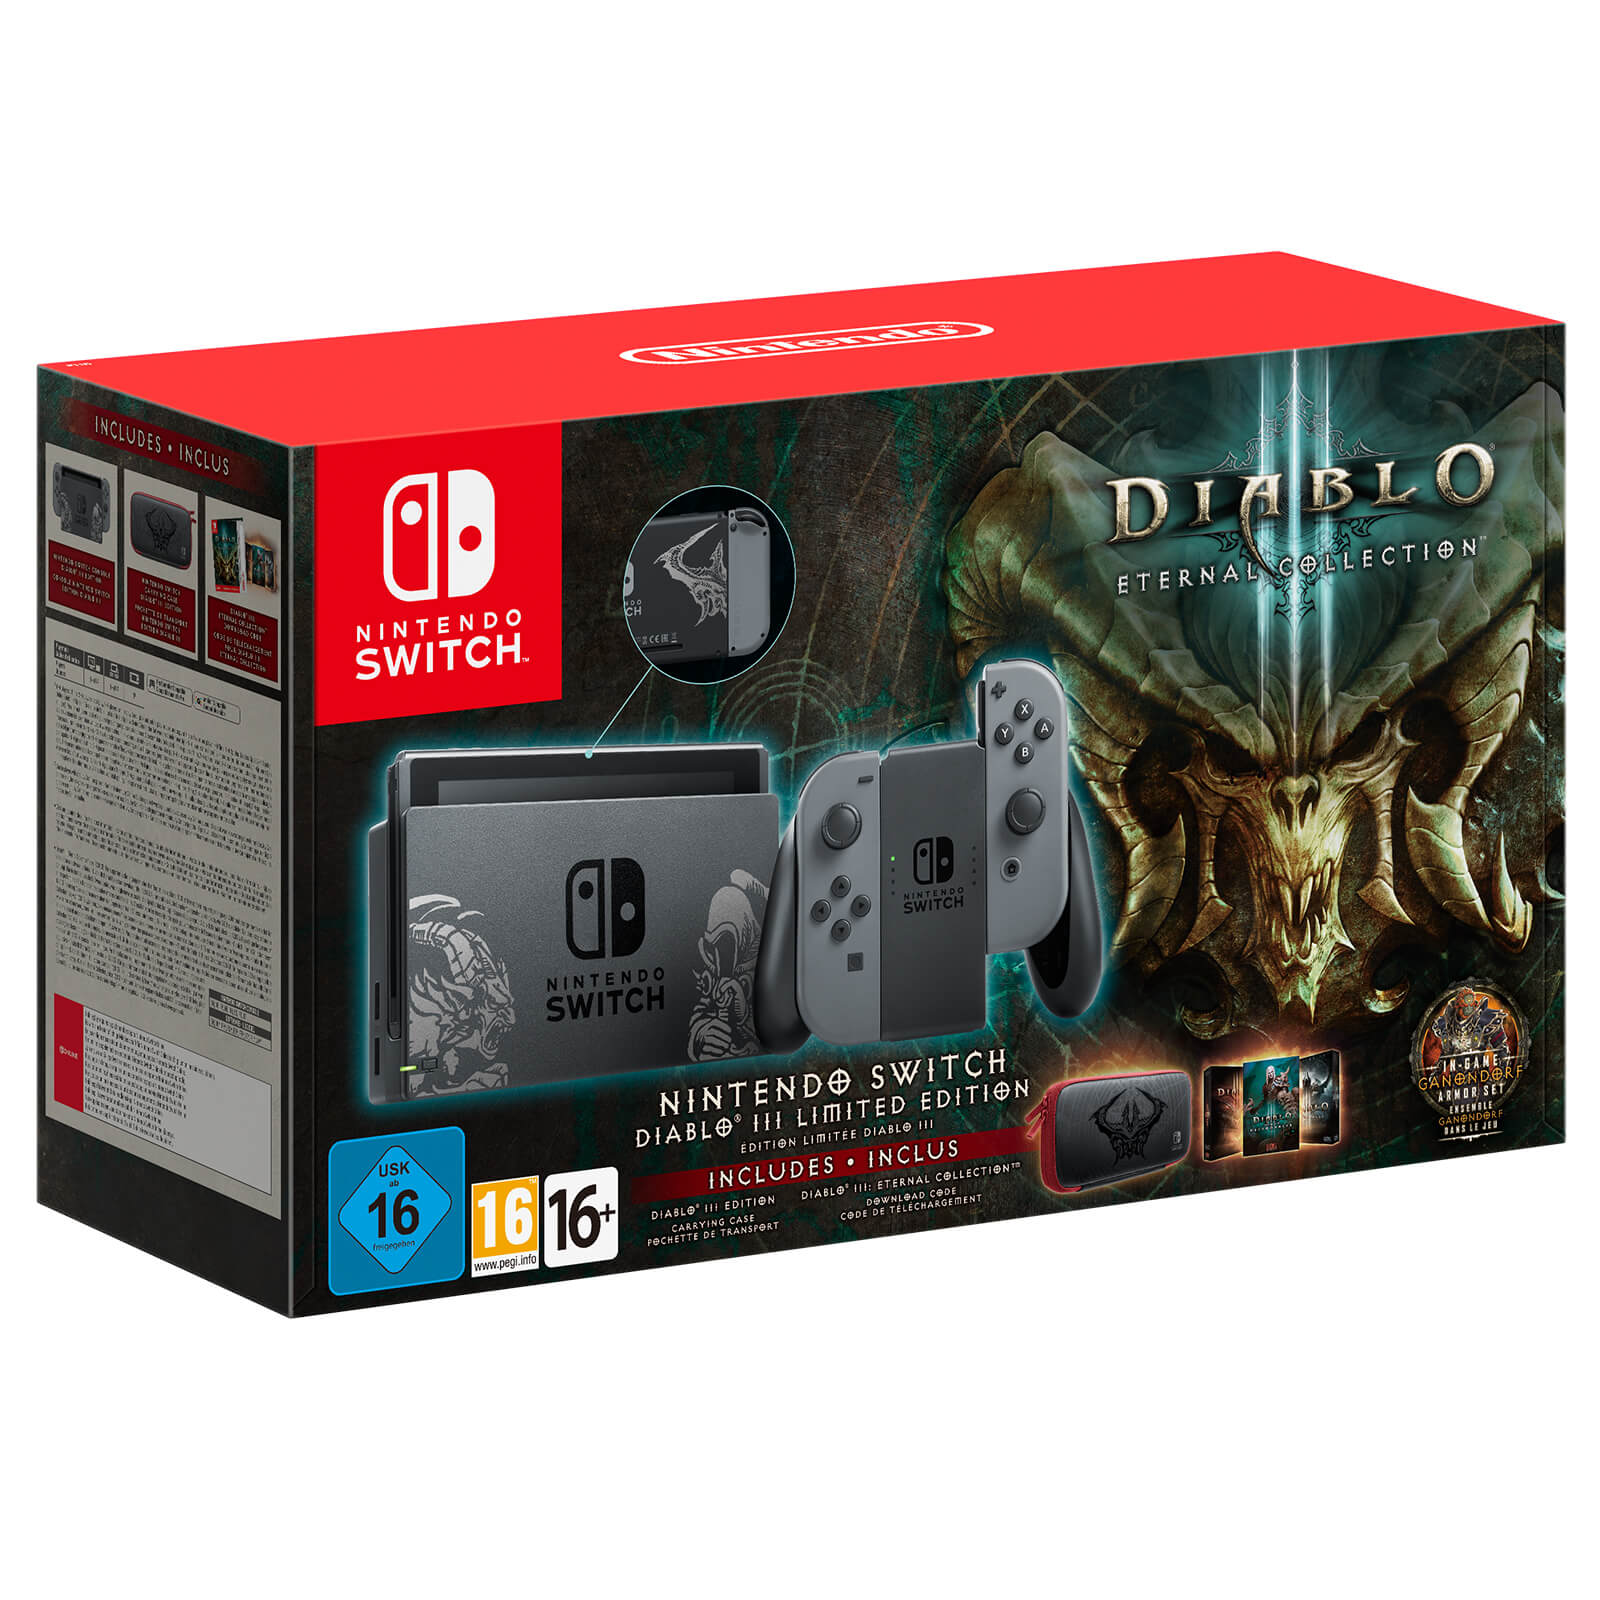 Nintendo Switch Diablo Iii Limited Edition Bundle Joy Con Controllers Grey Console Dock Which Holds The Main And Connects It To A Tv Decorated With Artwork From